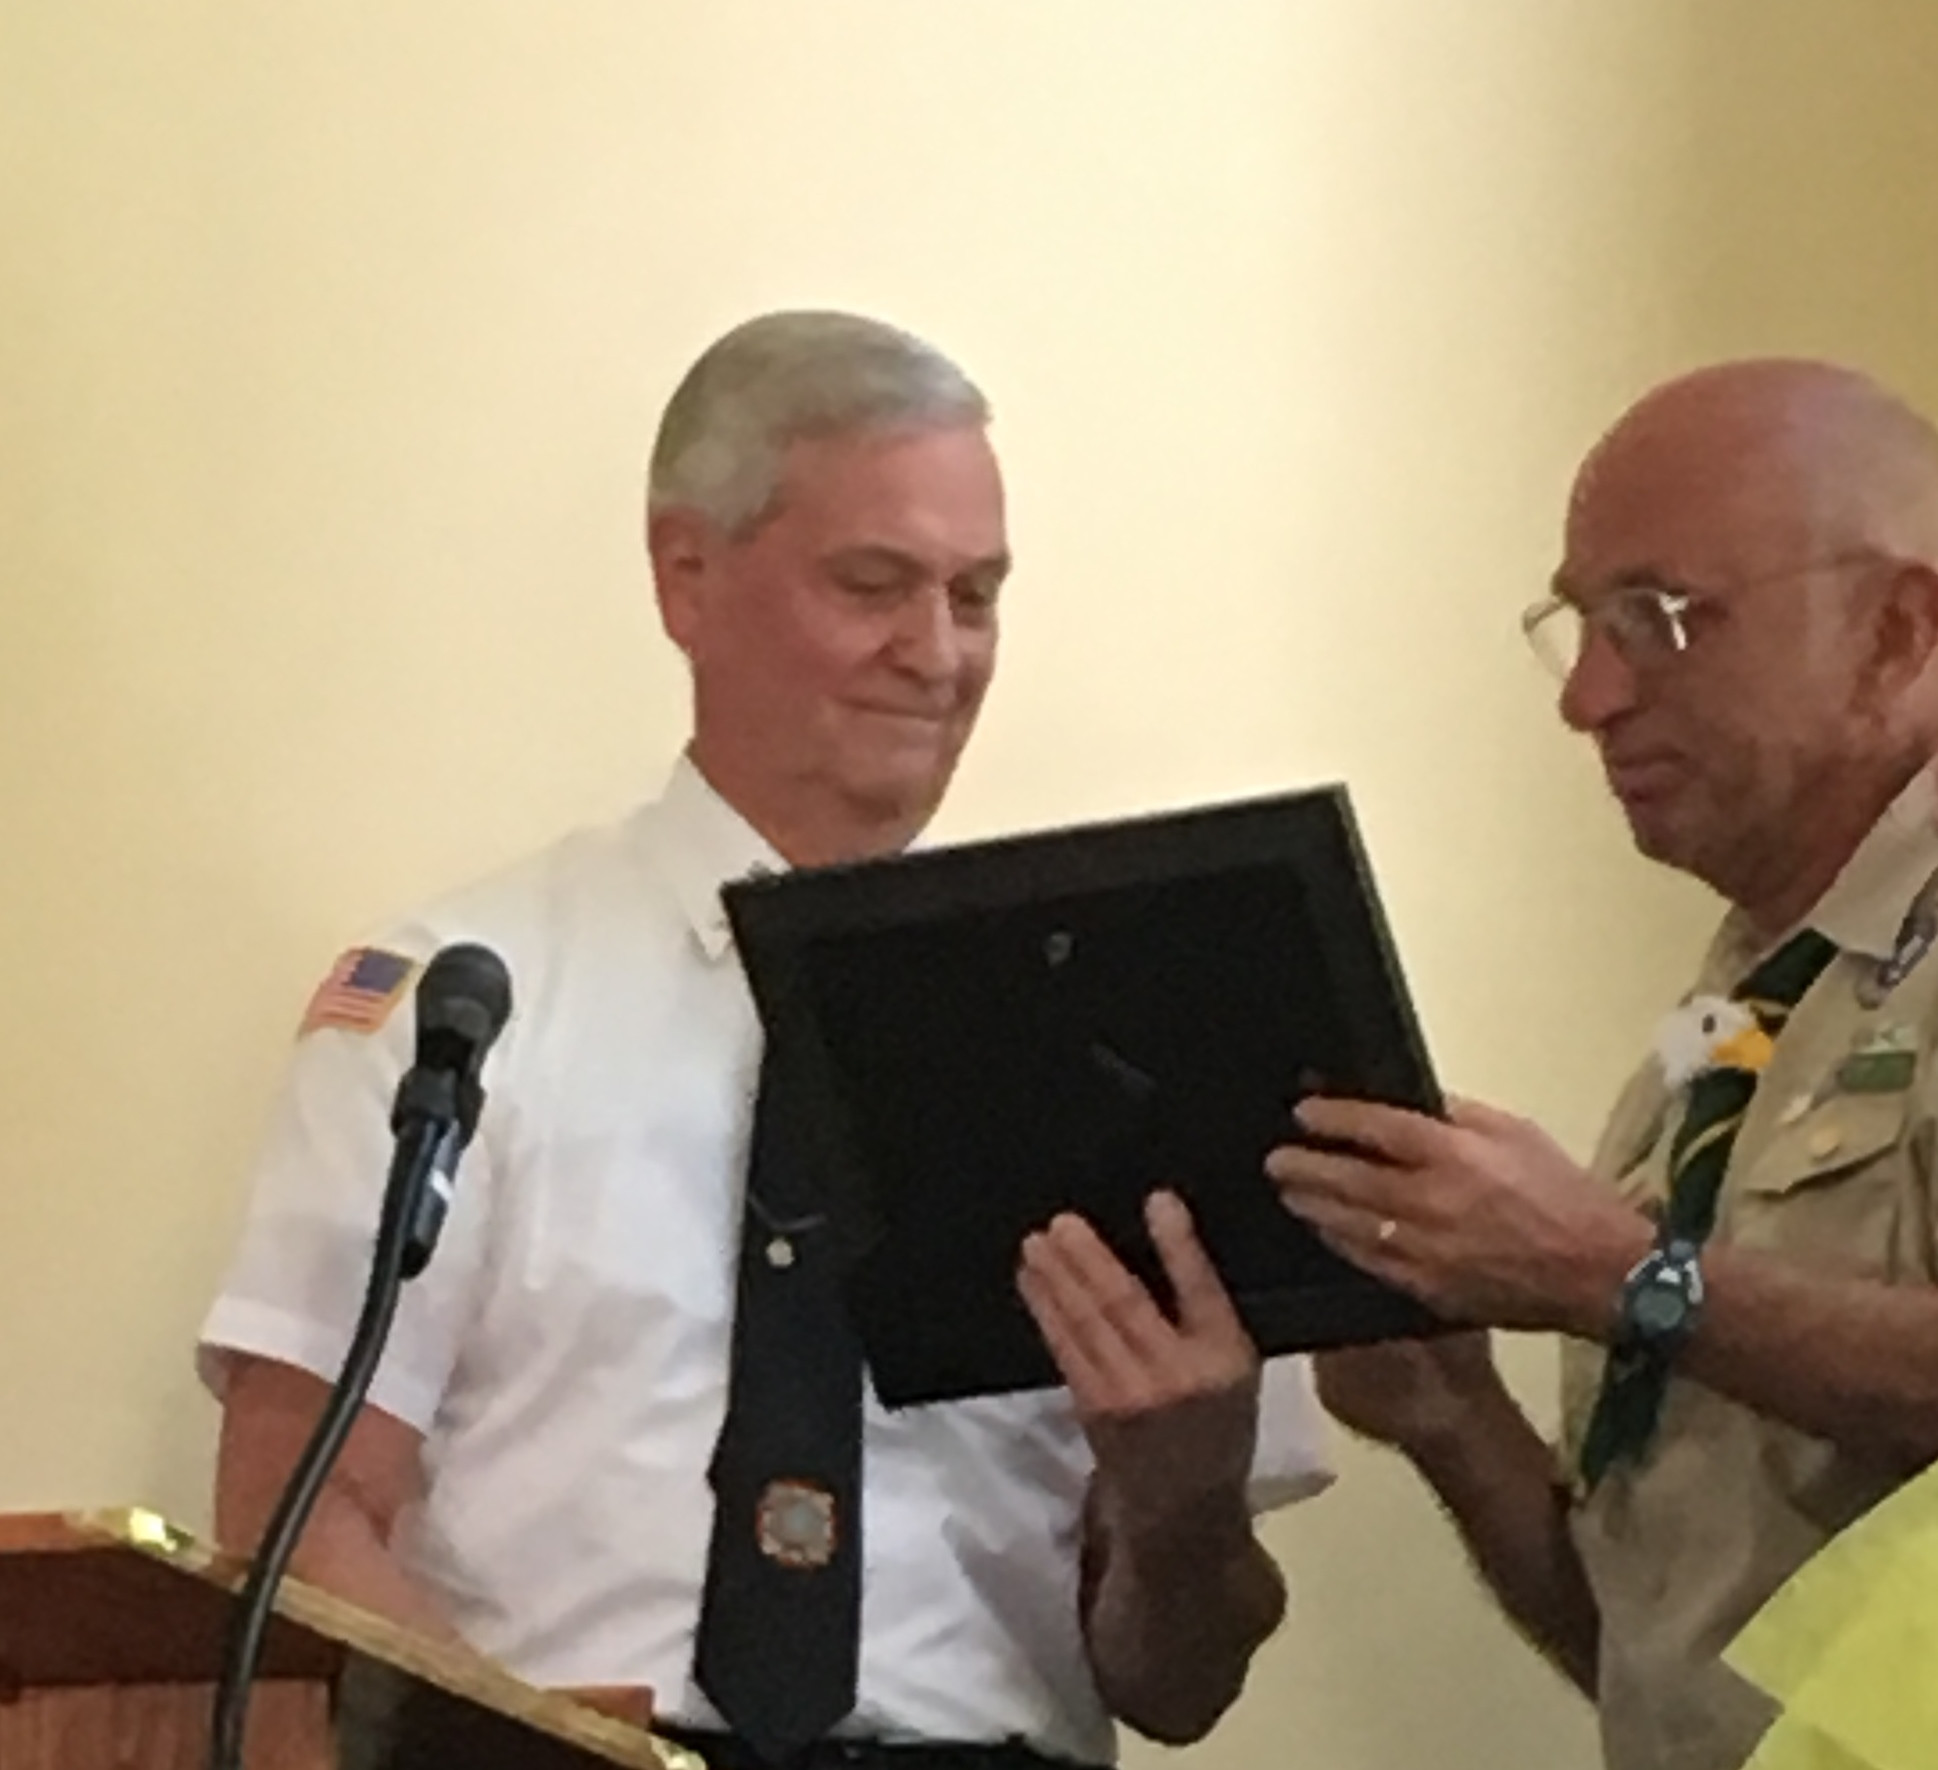 Randolph VFW Post presented Troop 50 Scout Master Ken Lareau with a certificate of recognition for his leadership at the June 18th Eagle Scout Court of Honor. Past Post Commander Jack Sassaman spoke about Mr. Lareau's military service in the Vietnam war and how his many helicopter missions were key to supplying our ground troops saving undocumented lives. Mr. Lareau became involved with scouting because his son became interested in scouting and later became the 3rd Eagle for Troop 50. The certificate commended Mr. Lareau for  having over 100 scouts achieve the rank of Eagle Scout under his leadership. He has been the scout master from the troop's first eagle to the latest #104 over a span of about 30 years.